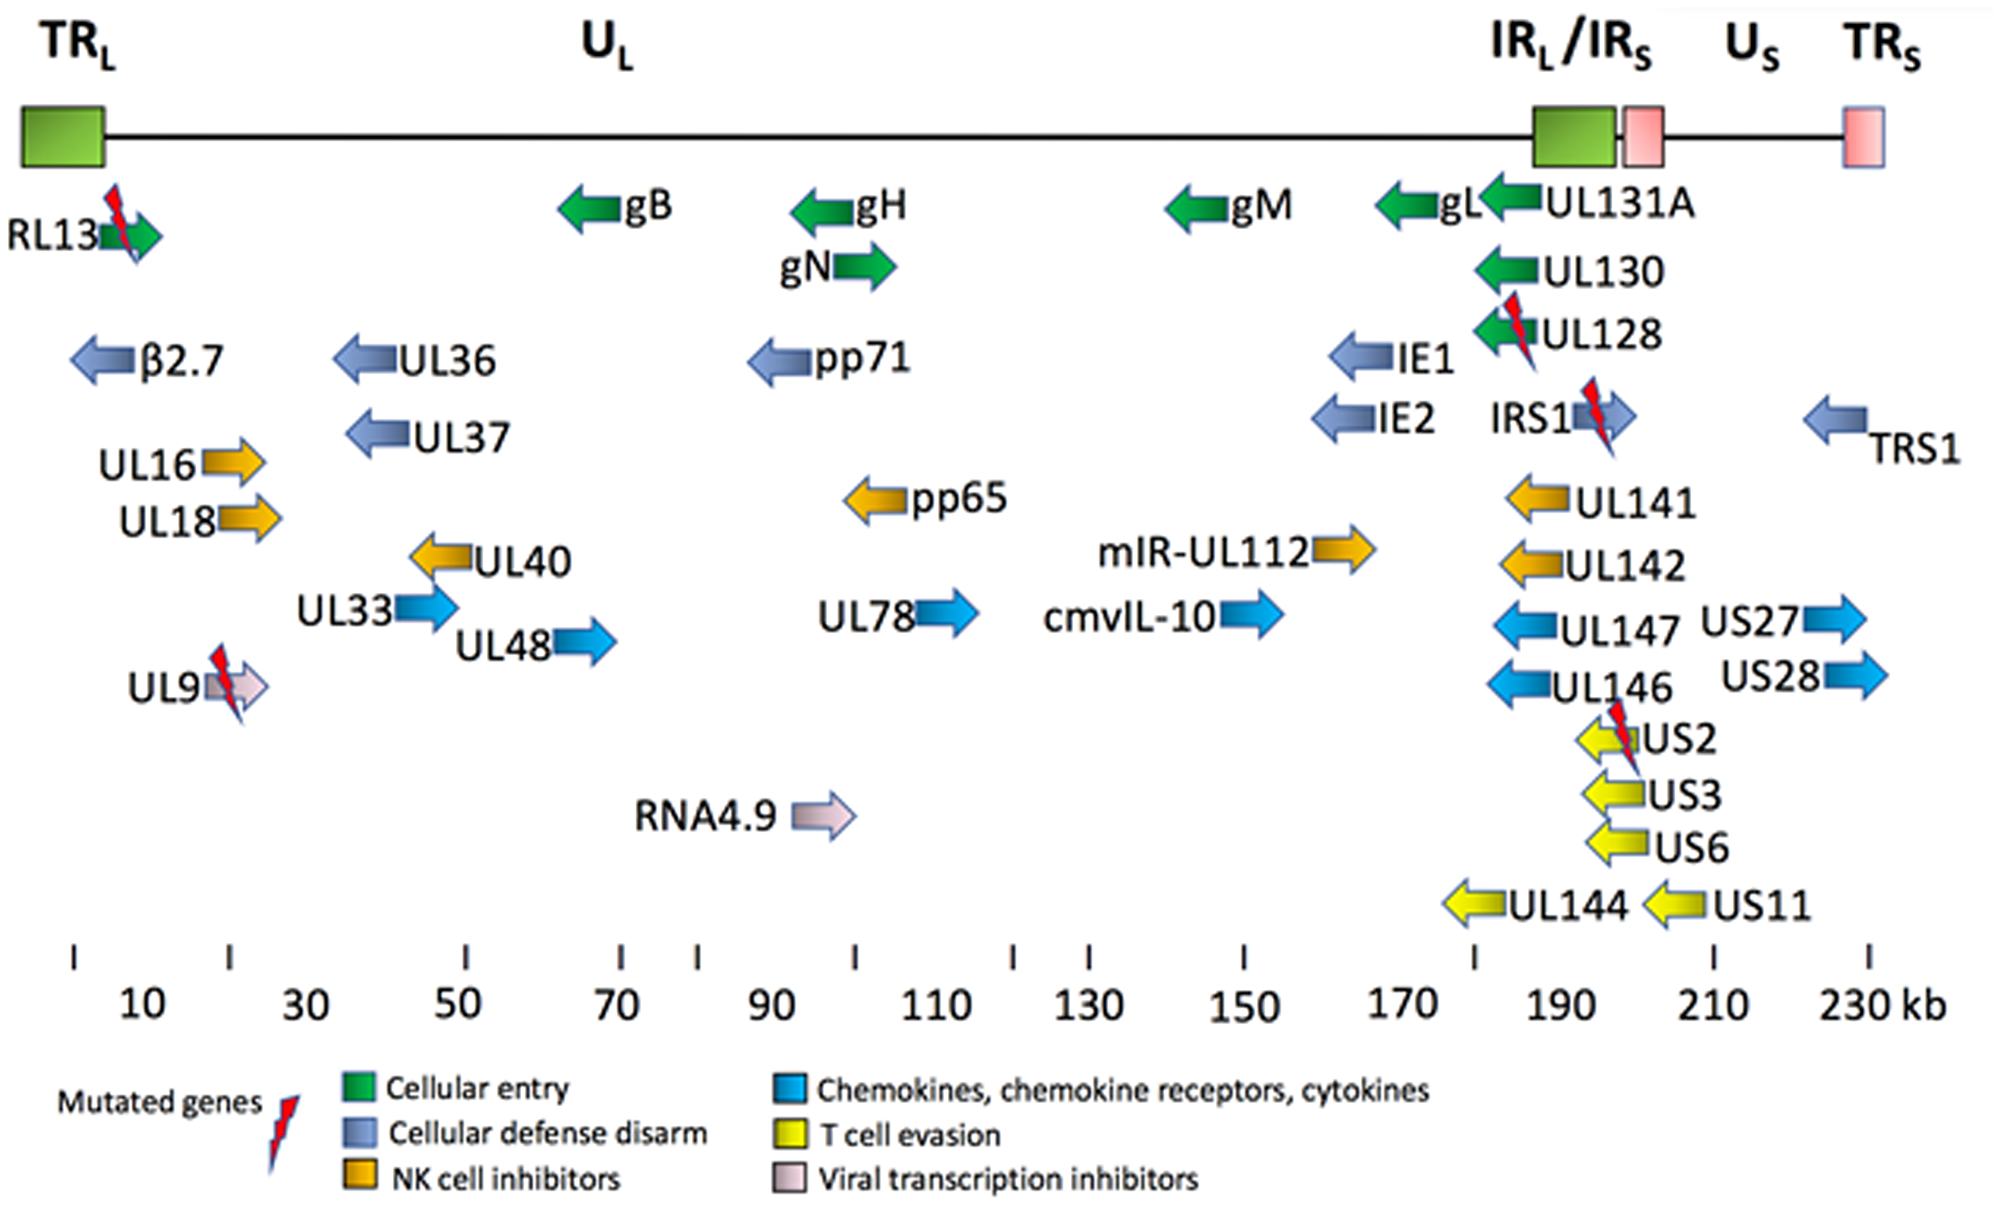 Key proteins encoded by HCMV genome [8, 119].